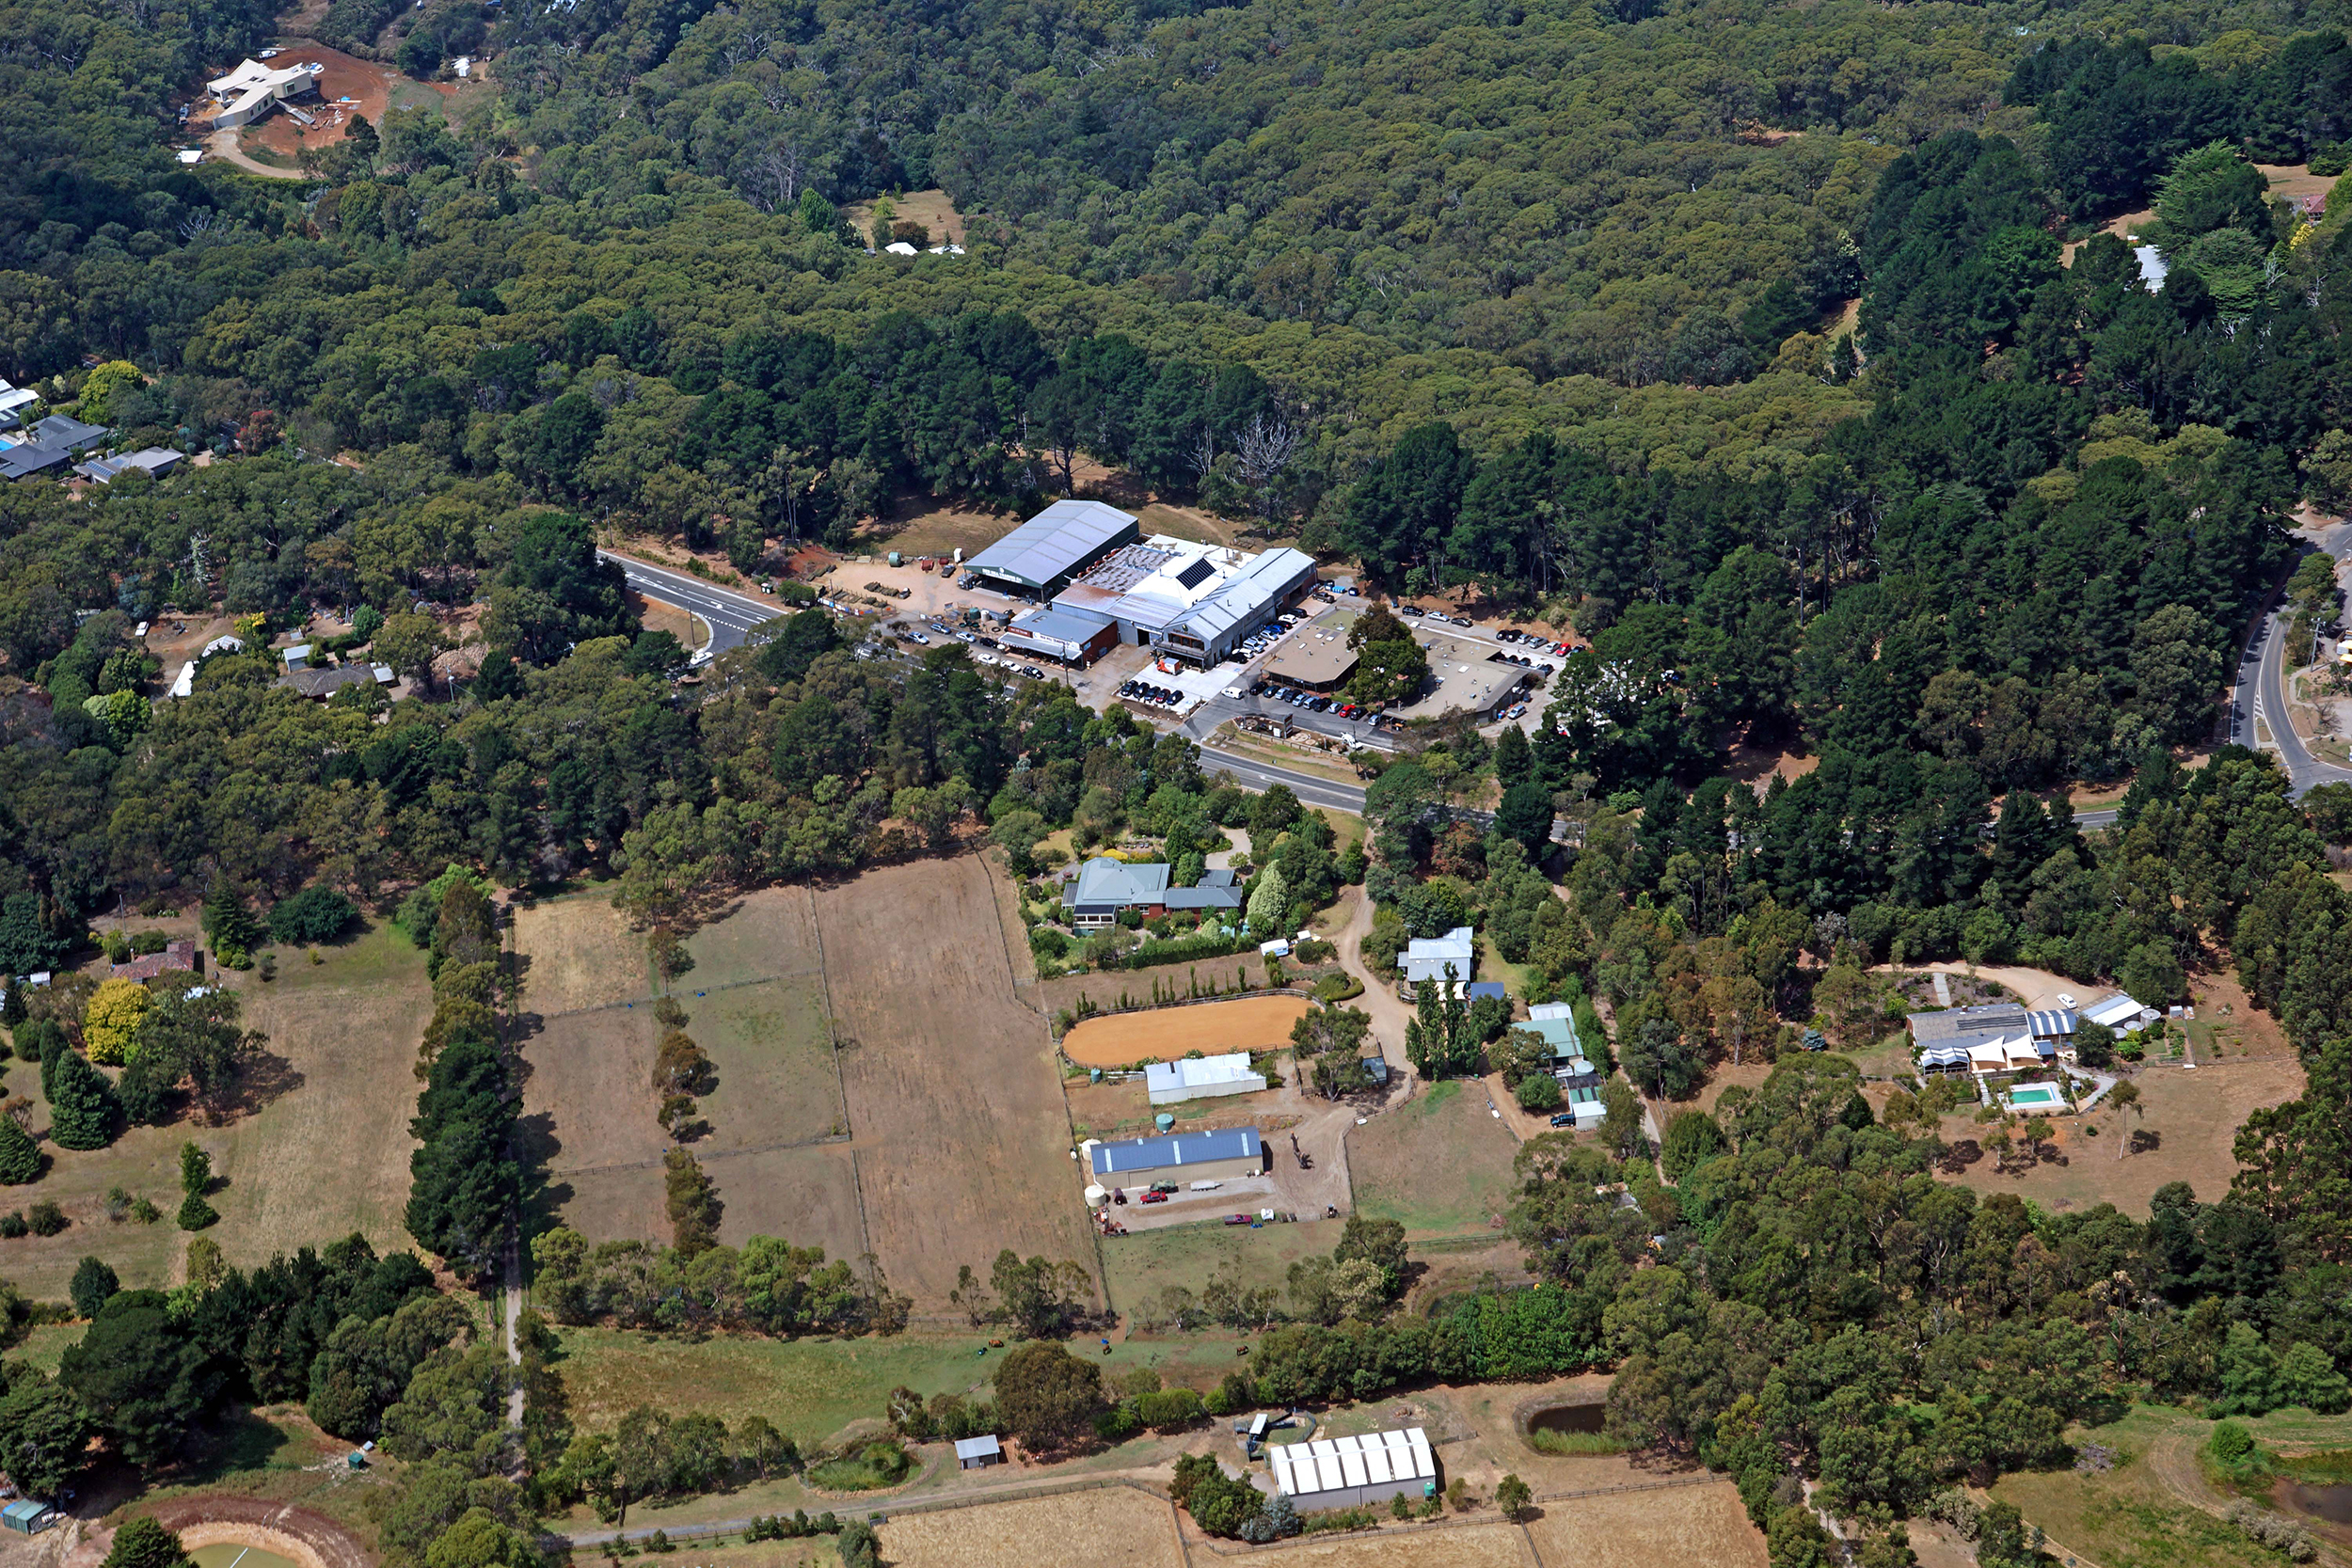 Aerial view of The Epicurean Red Hill building, nestled in amongst the lush national forests of Red Hill